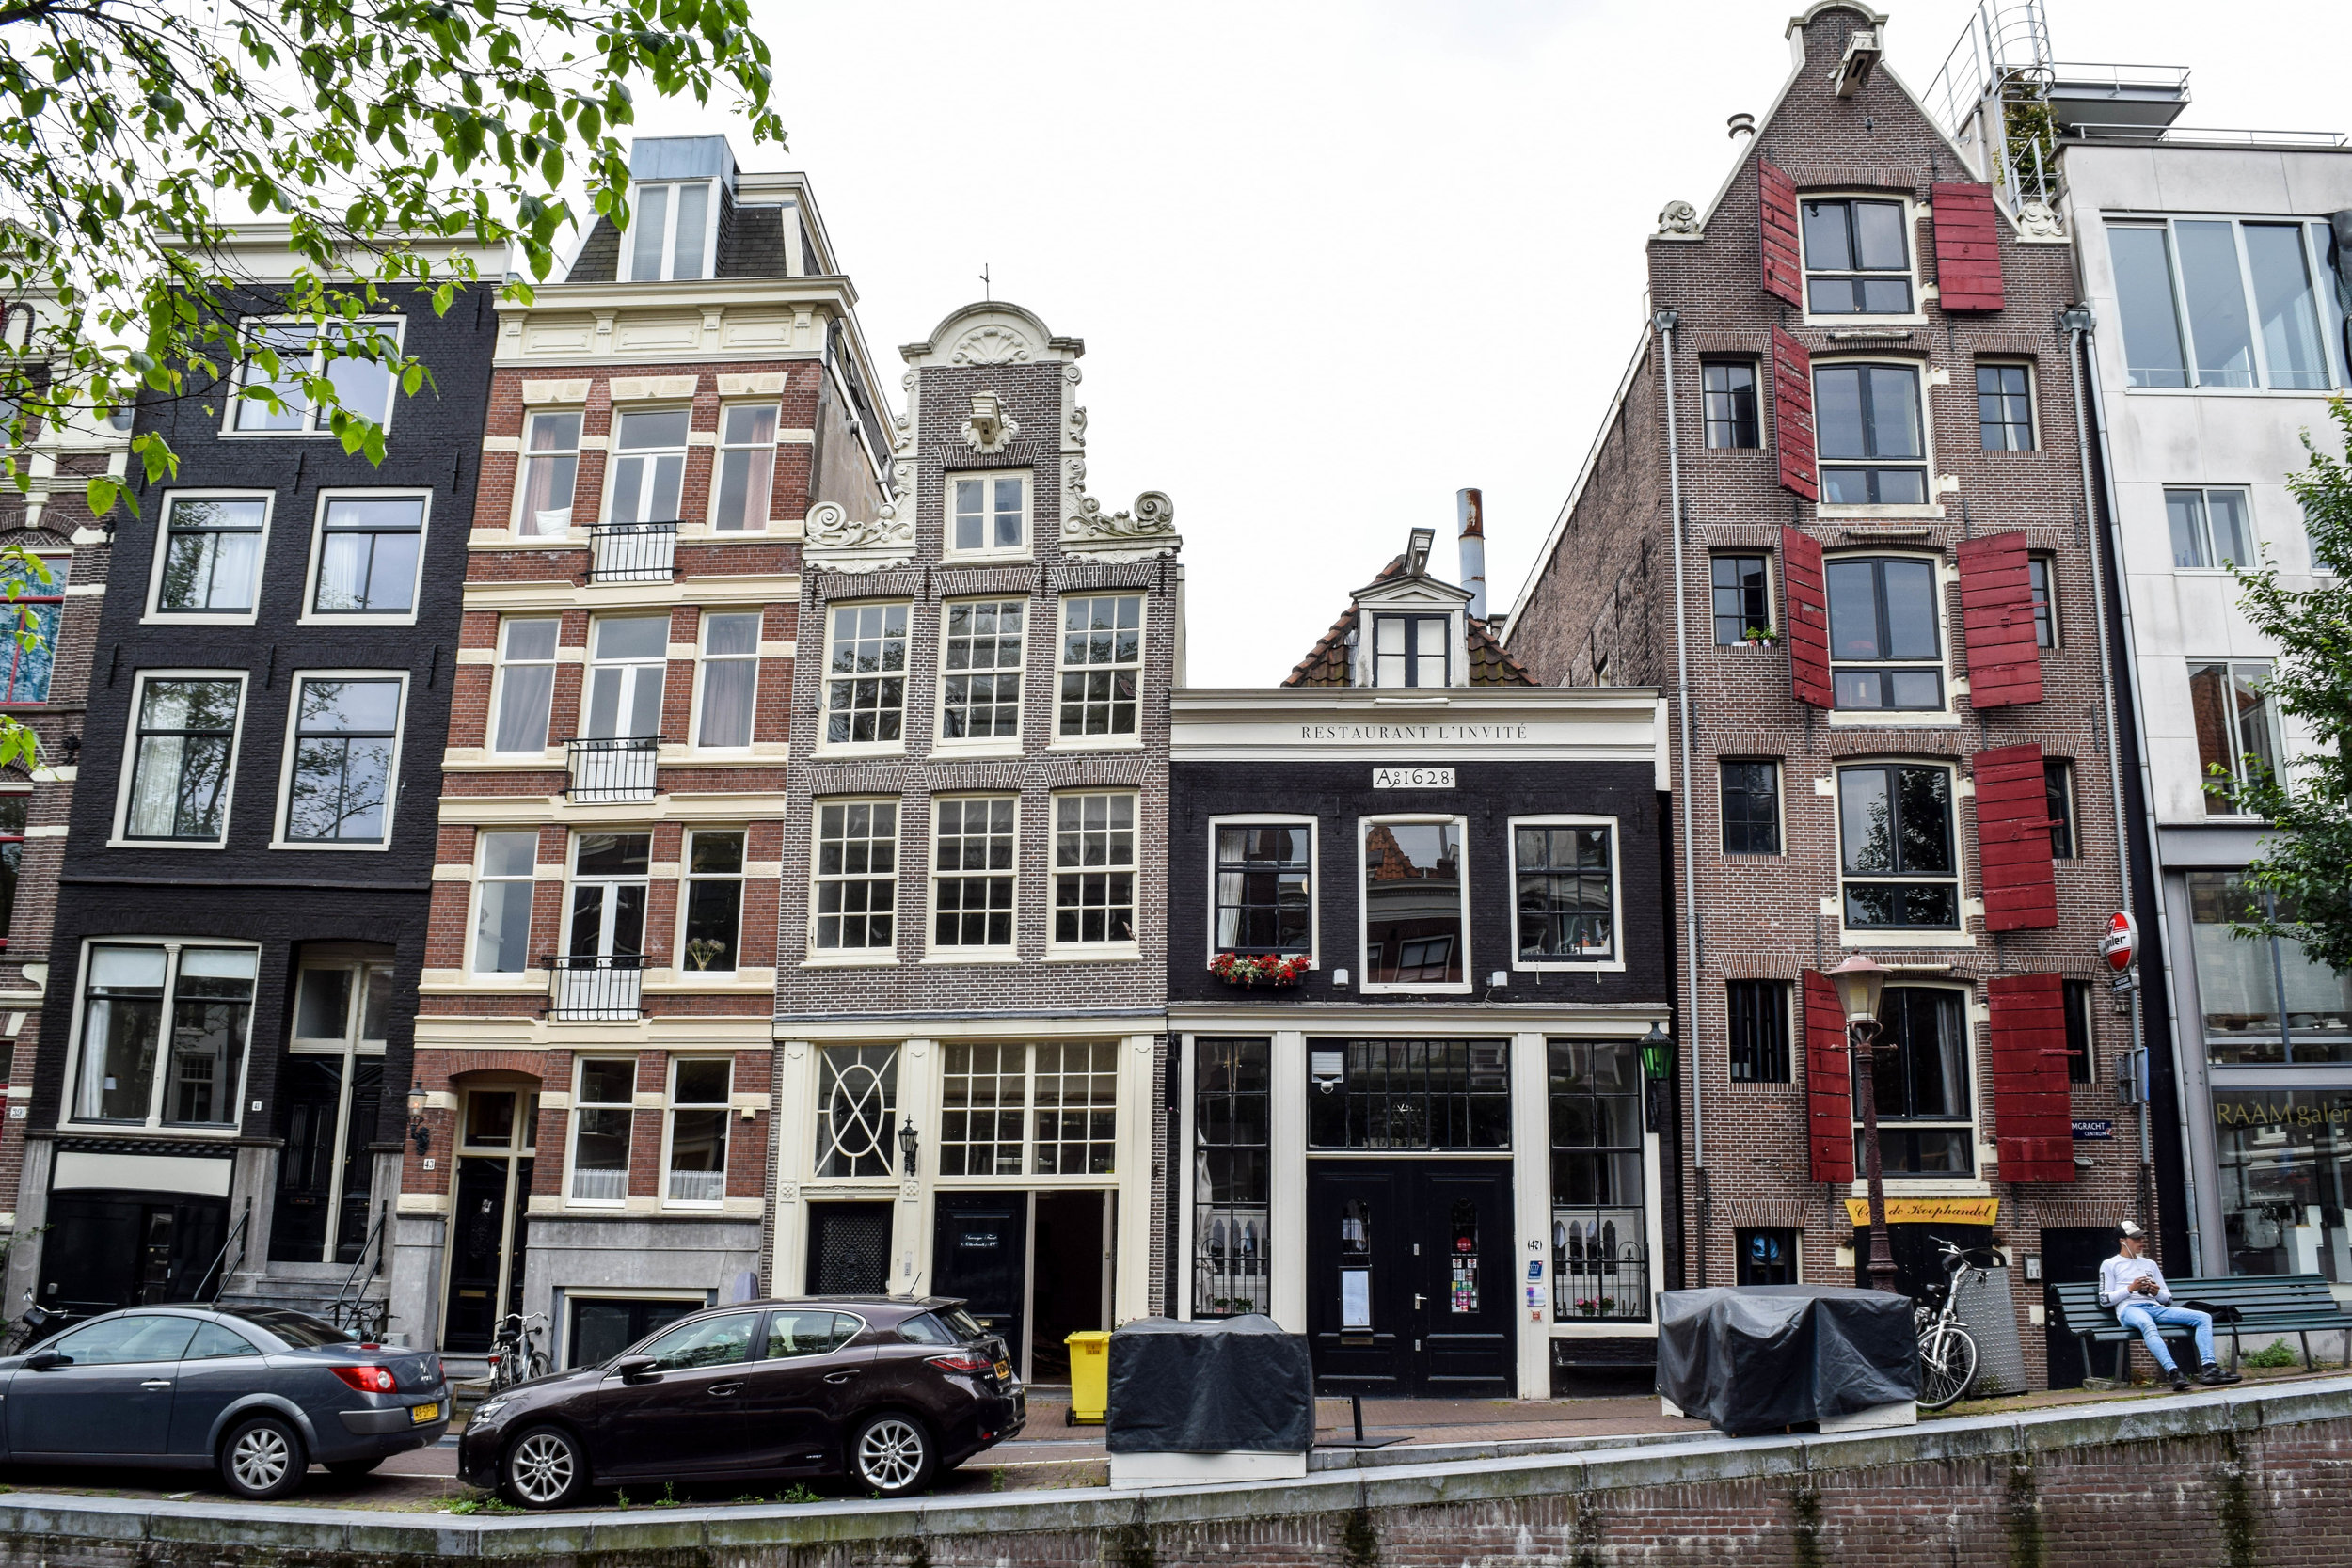 A typical street in the city center of Amsterdam